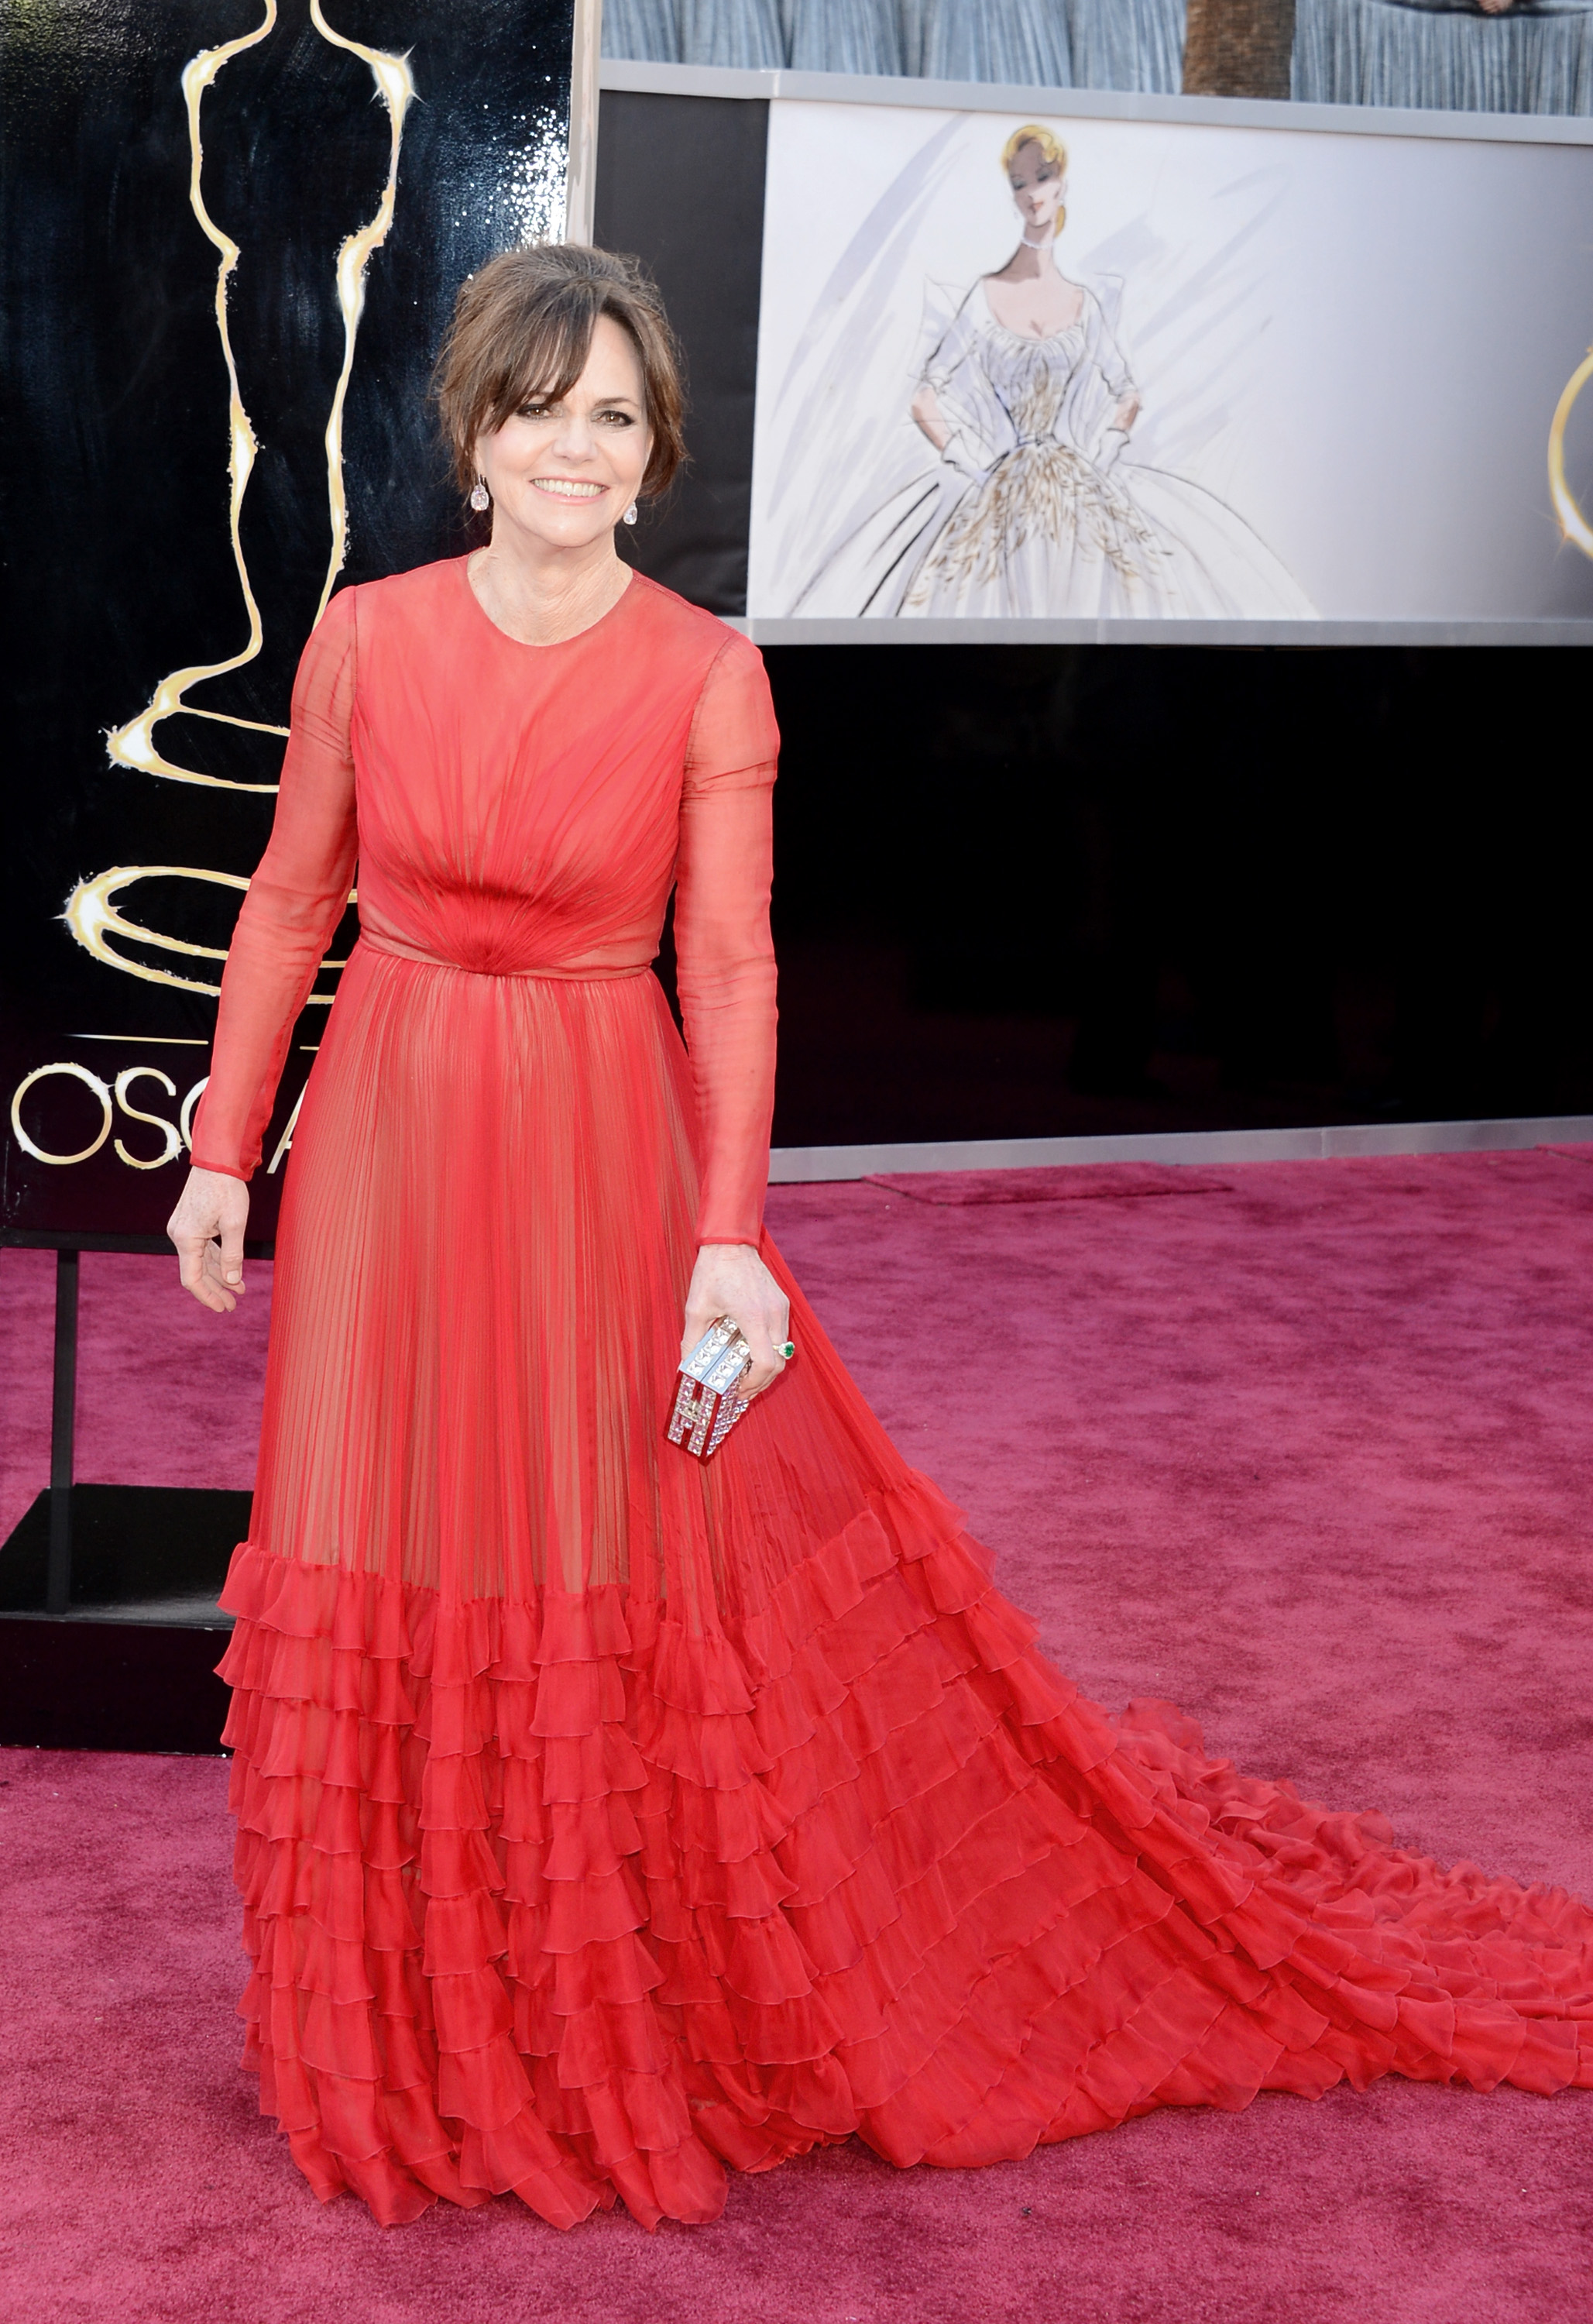 Sally Field on the red carpet at the Oscars 2013.